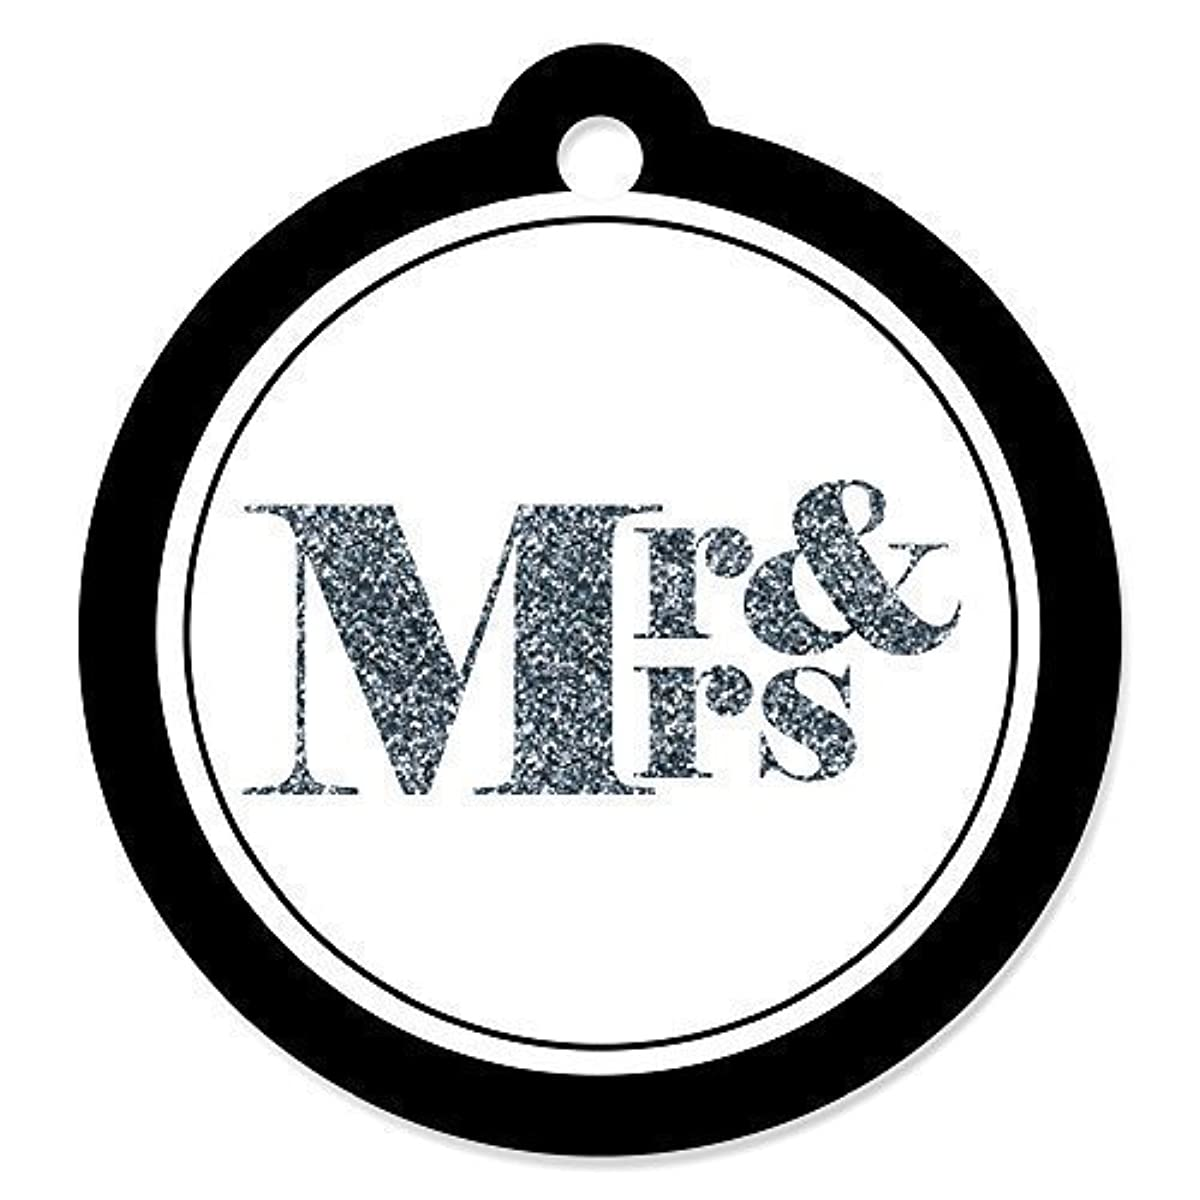 Mr. & Mrs. - Silver - Wedding Party Favor Gift Tags (Set of 20)